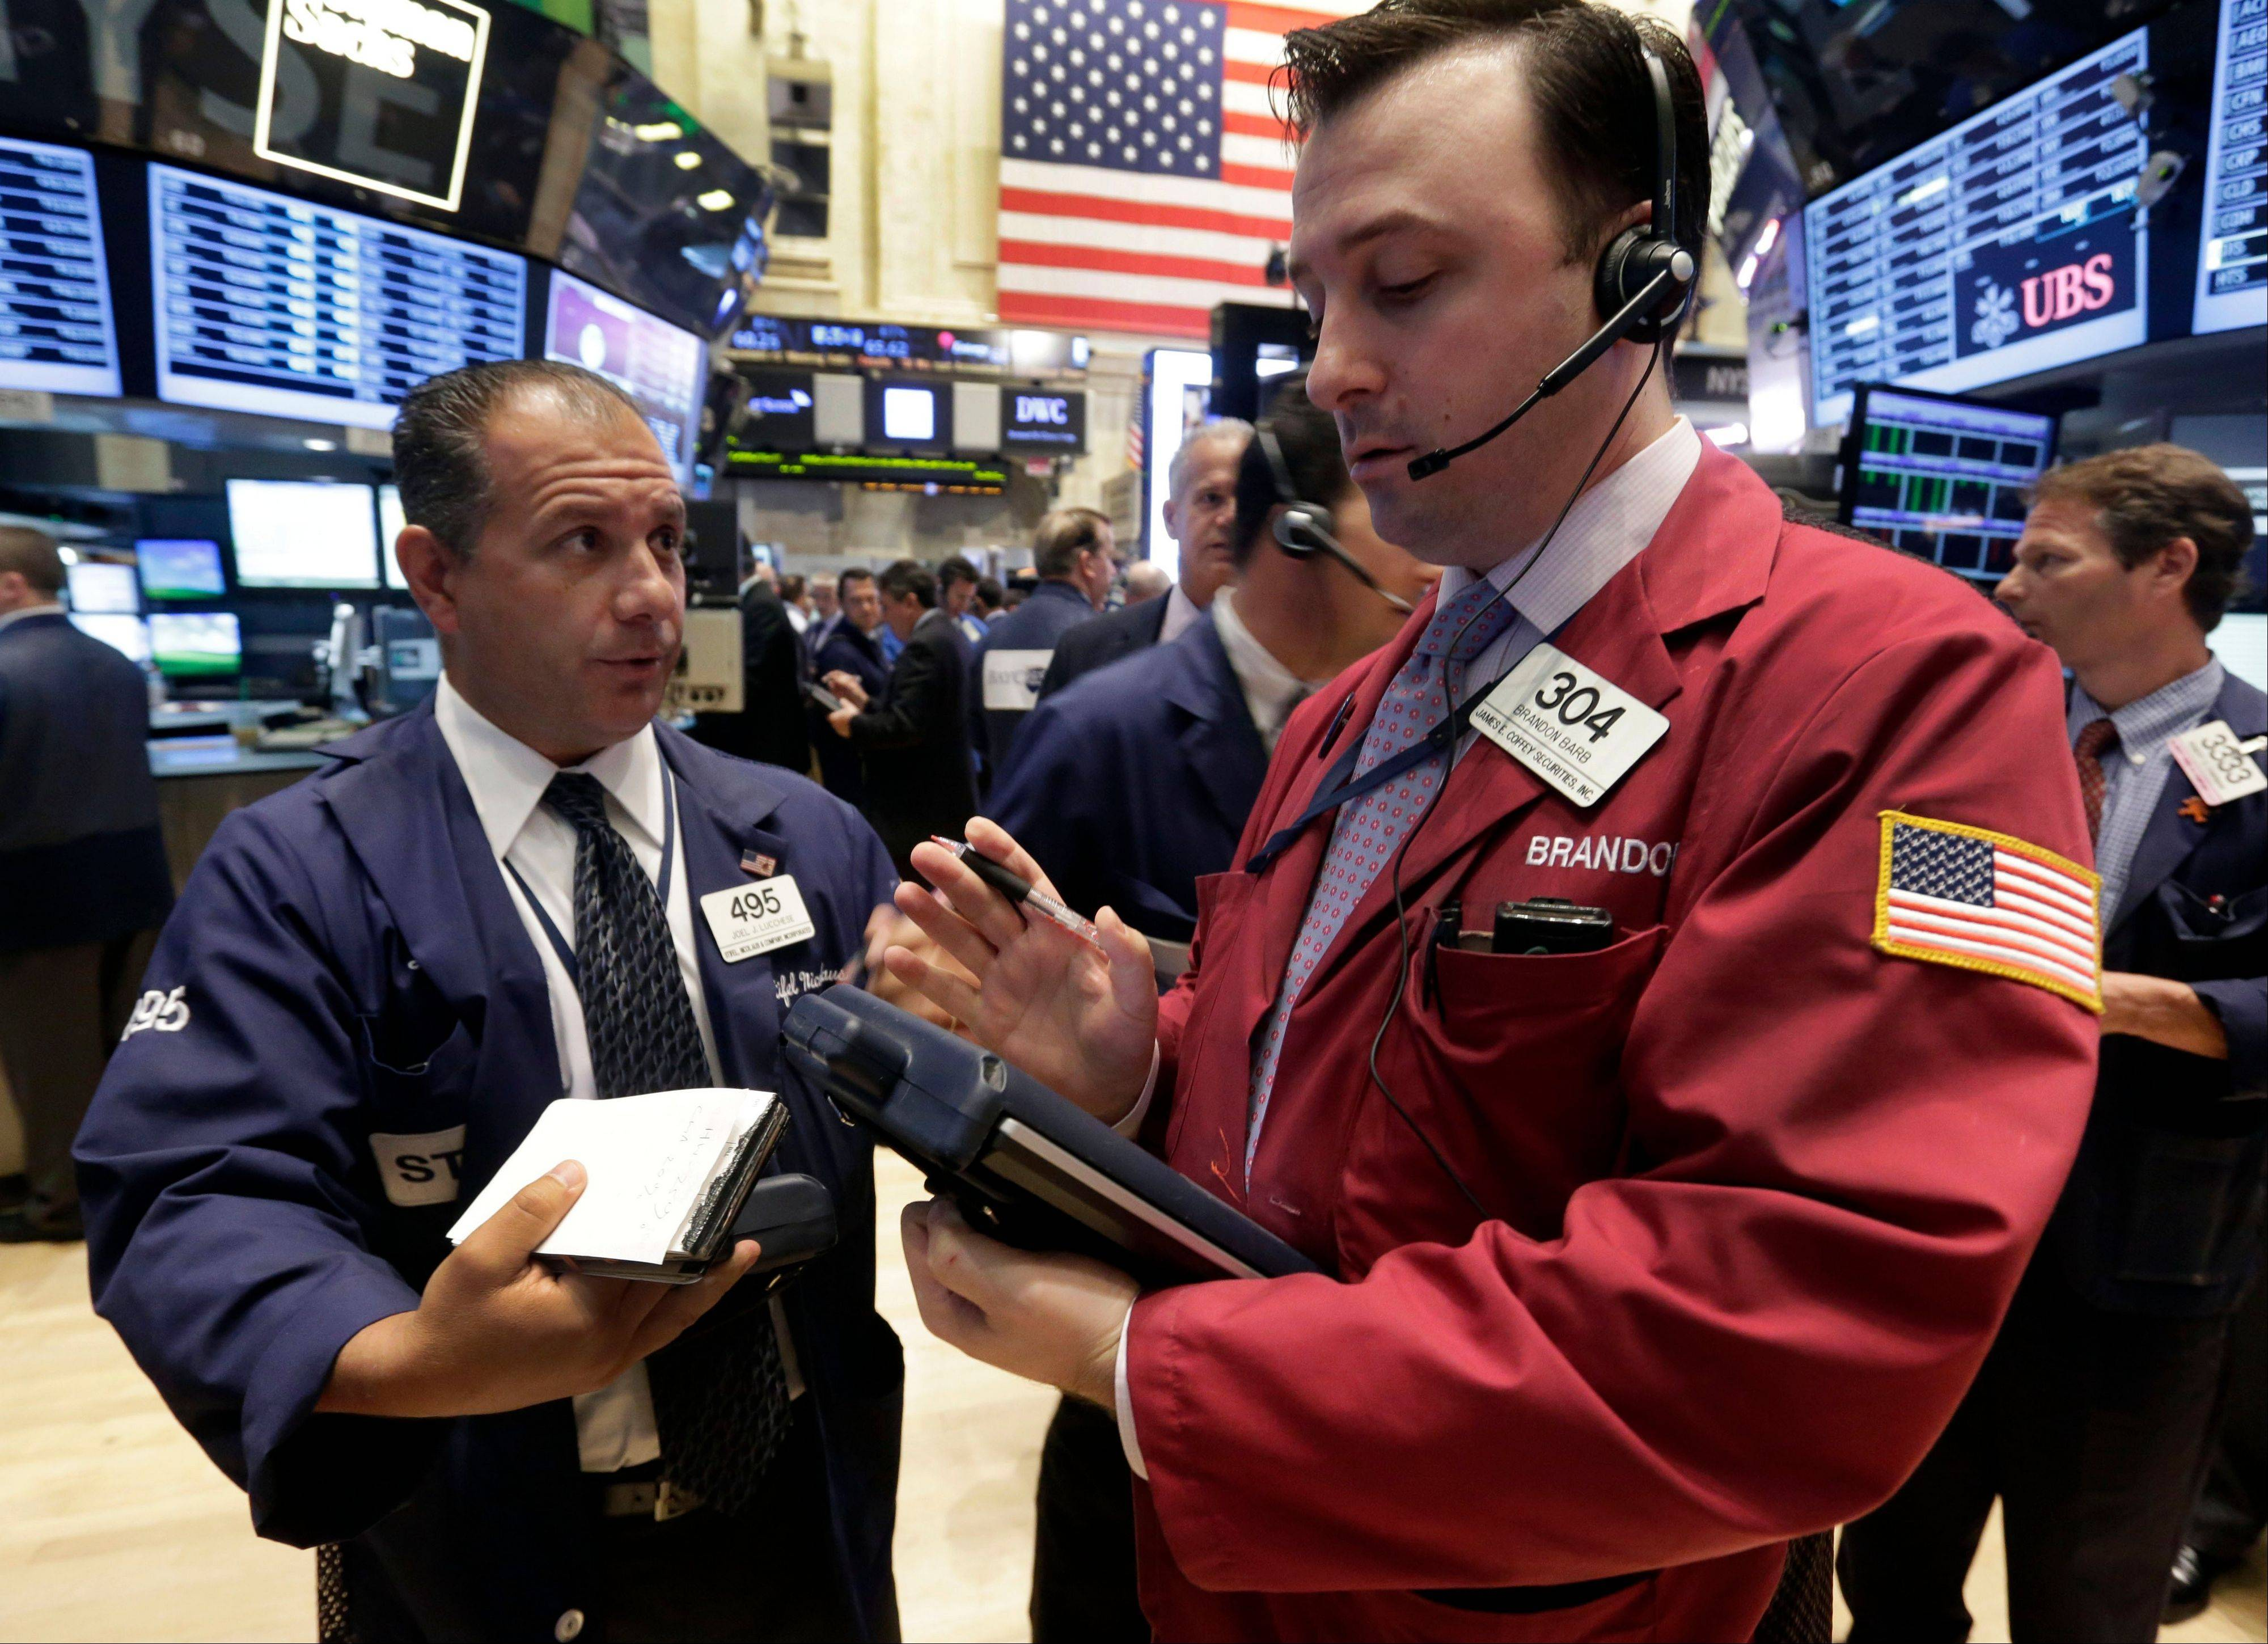 U.S. stocks gained, ending a three-day decline in the Standard & Poor�s 500 Index, amid better- than-forecast economic data and acquisitions in the media and grocery industries.